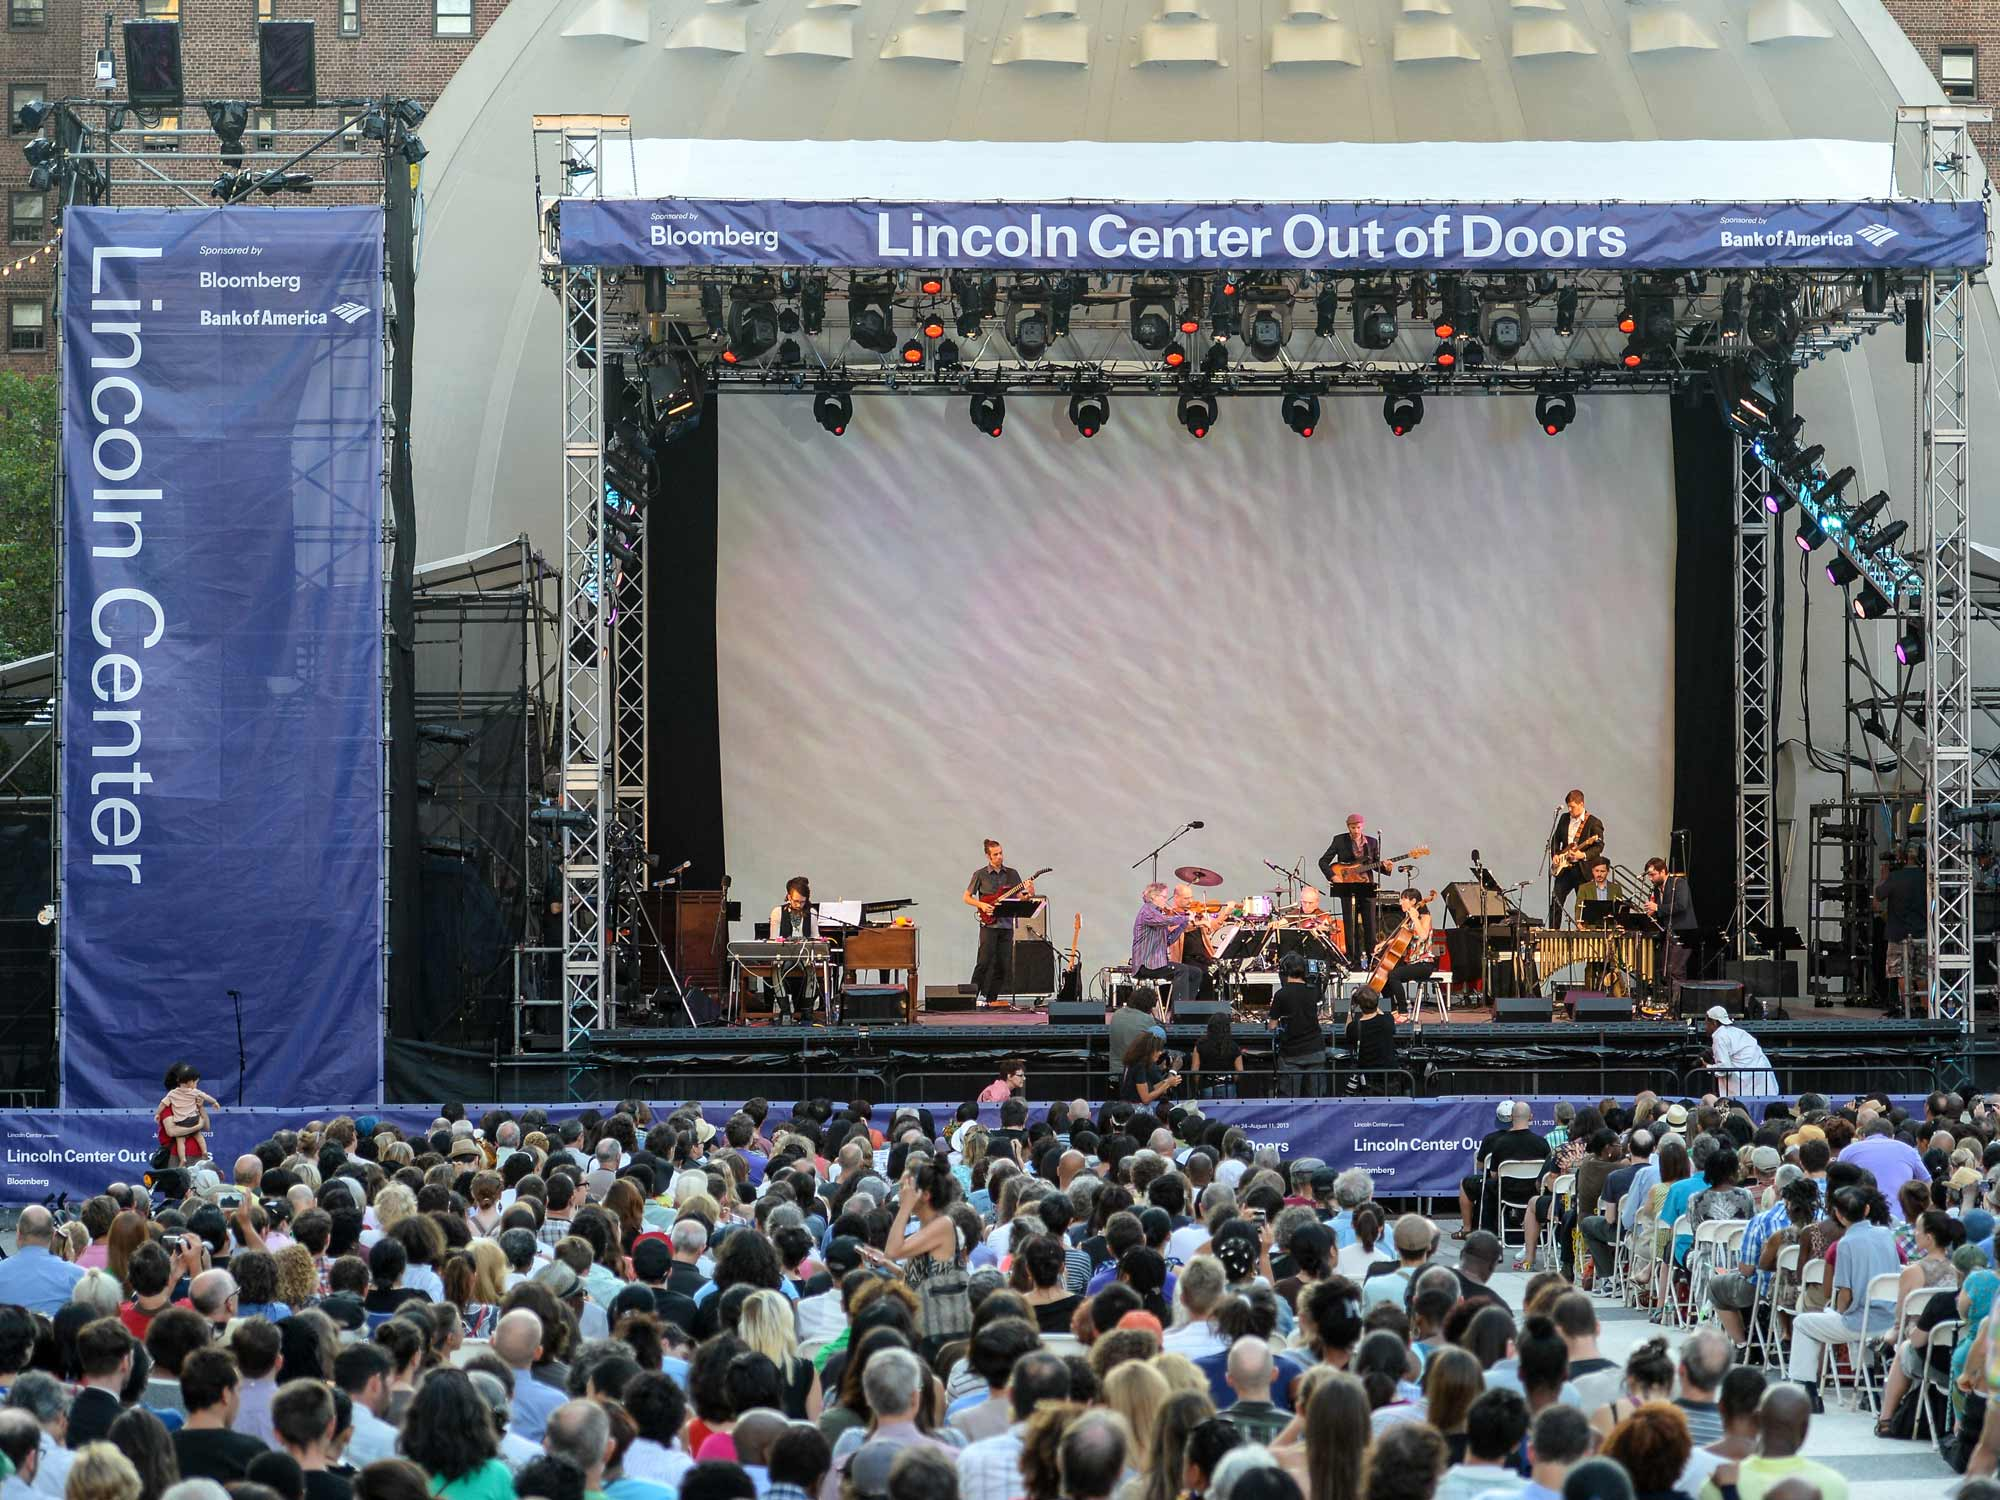 NPR Music Live in Concert<br><small>Hosted by</small> <strong>Bob Boilen</strong> of <strong><em>All Songs Considered</strong></em>, <strong>Felix Contreras</strong> <small>and</small> <strong>Jasmine Garsd</strong> of <strong><em>Alt.Latino</strong></em>, <small>and</small> <strong>Ann Powers</strong> of <strong><em>The Record</strong></em>